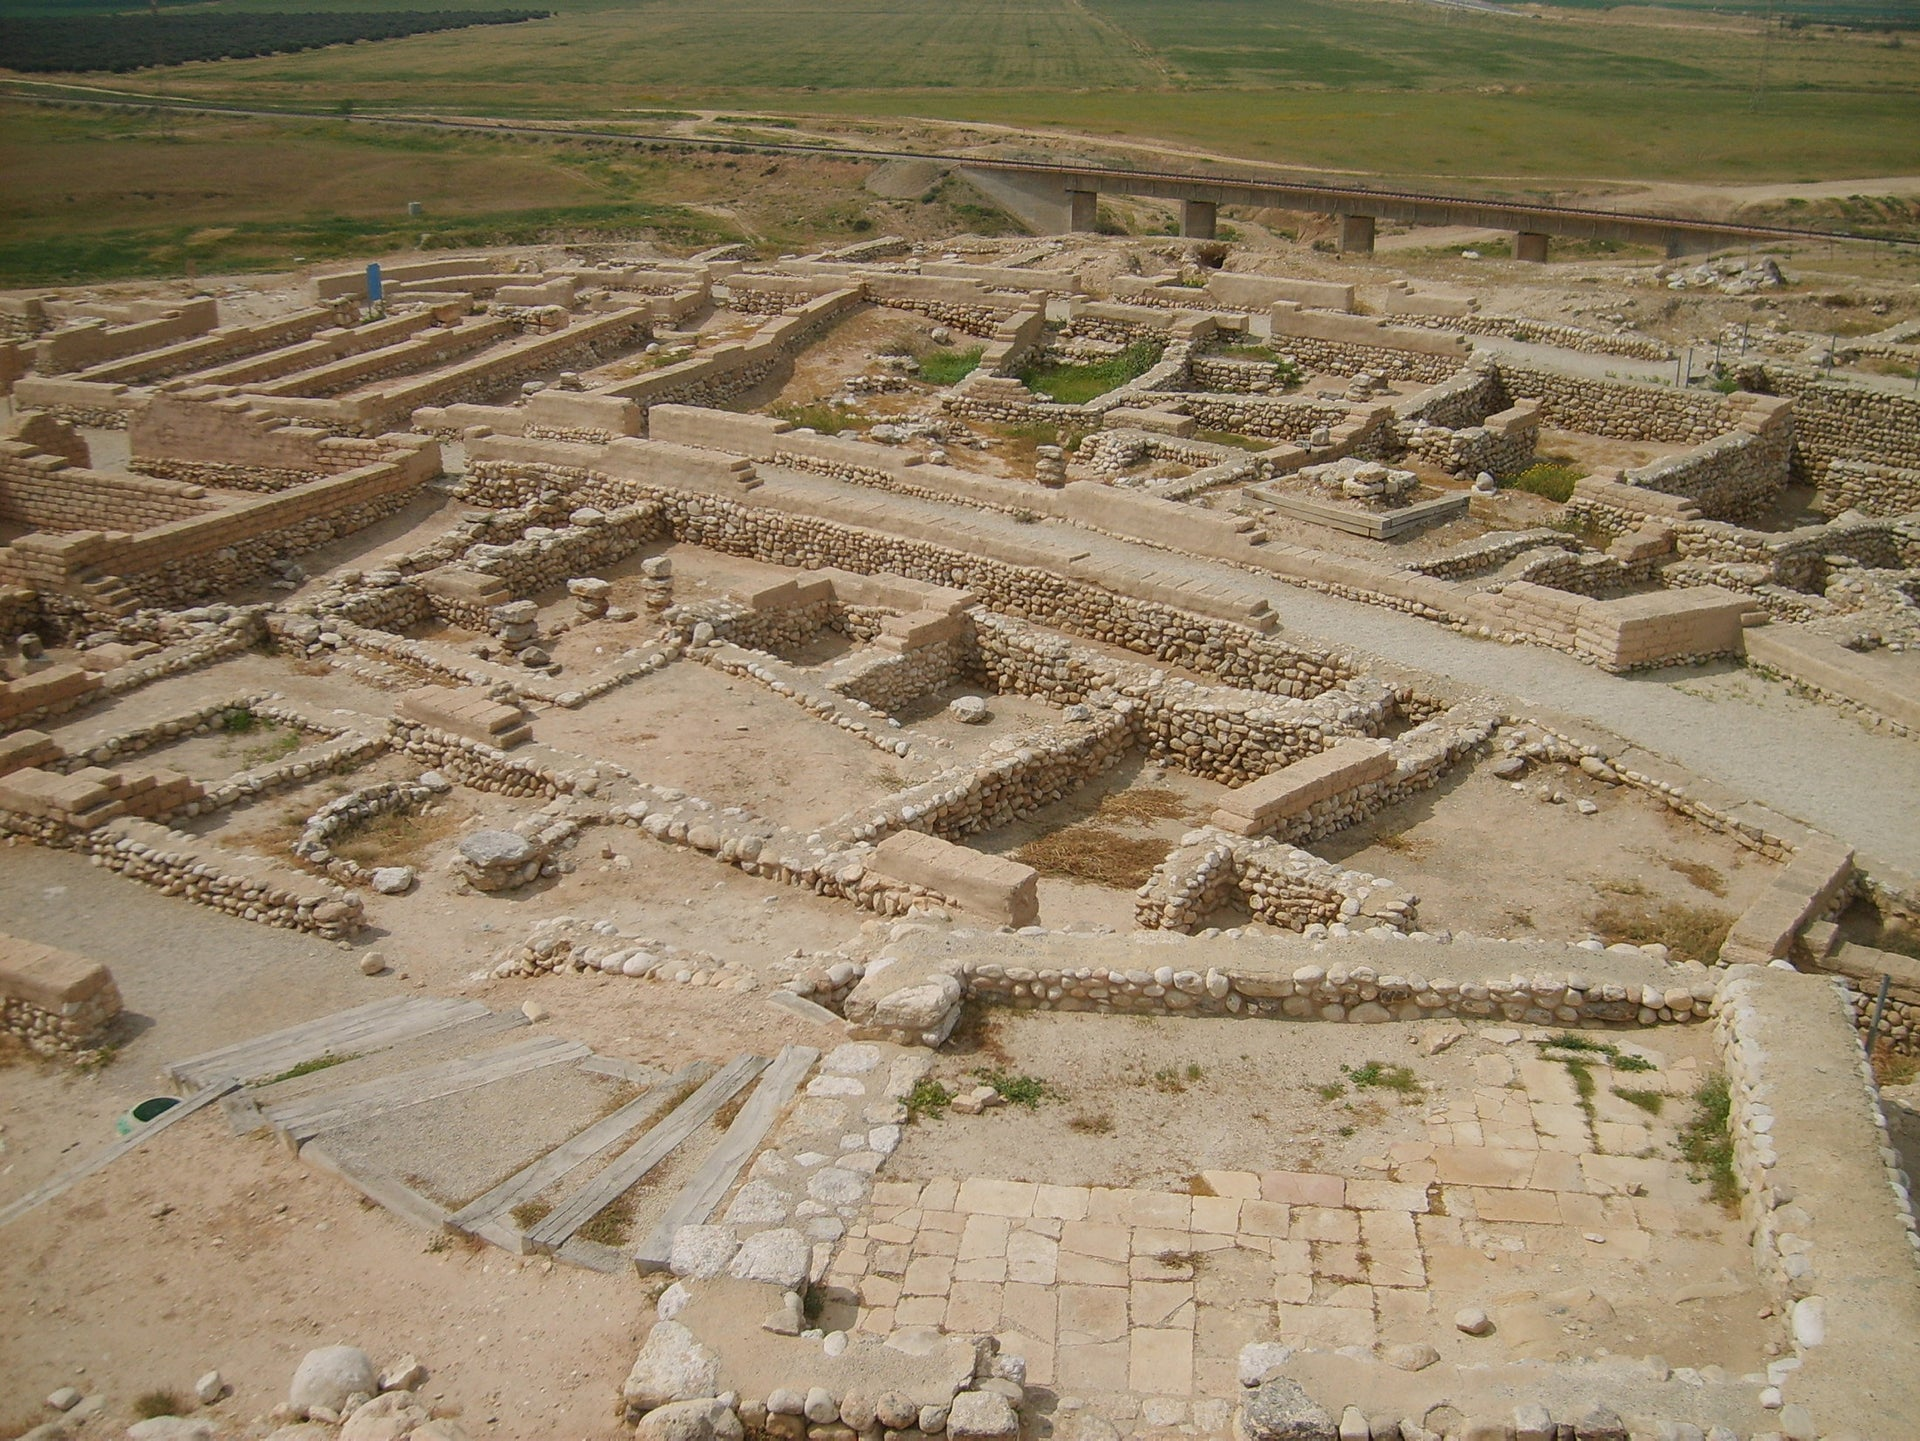 Tell Beer Sheva, to the south of the newly discovered village